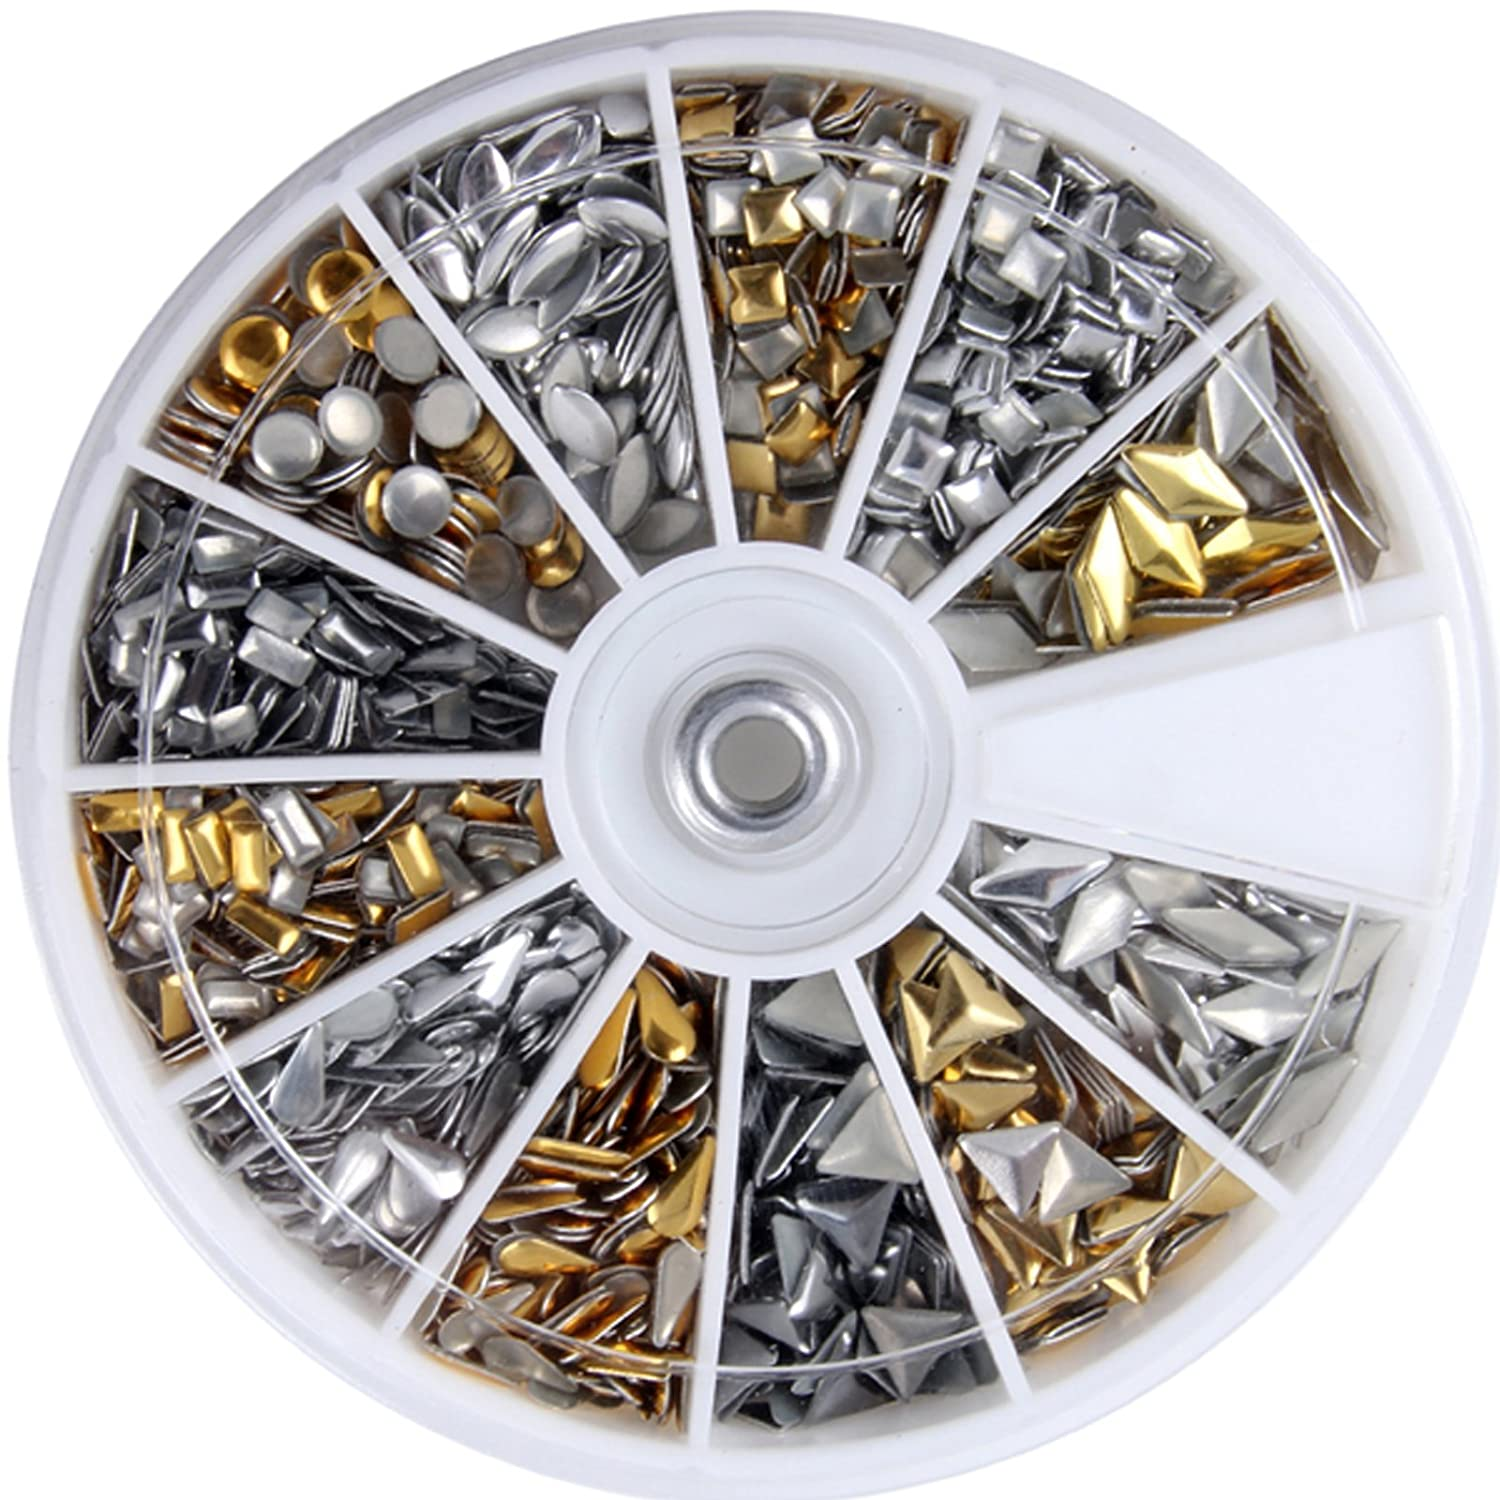 SODIAL(R) 600 pcs 3D Design Nail Art Different Metallic Studs Gold & Silver Stud Wheel Manicure 045111